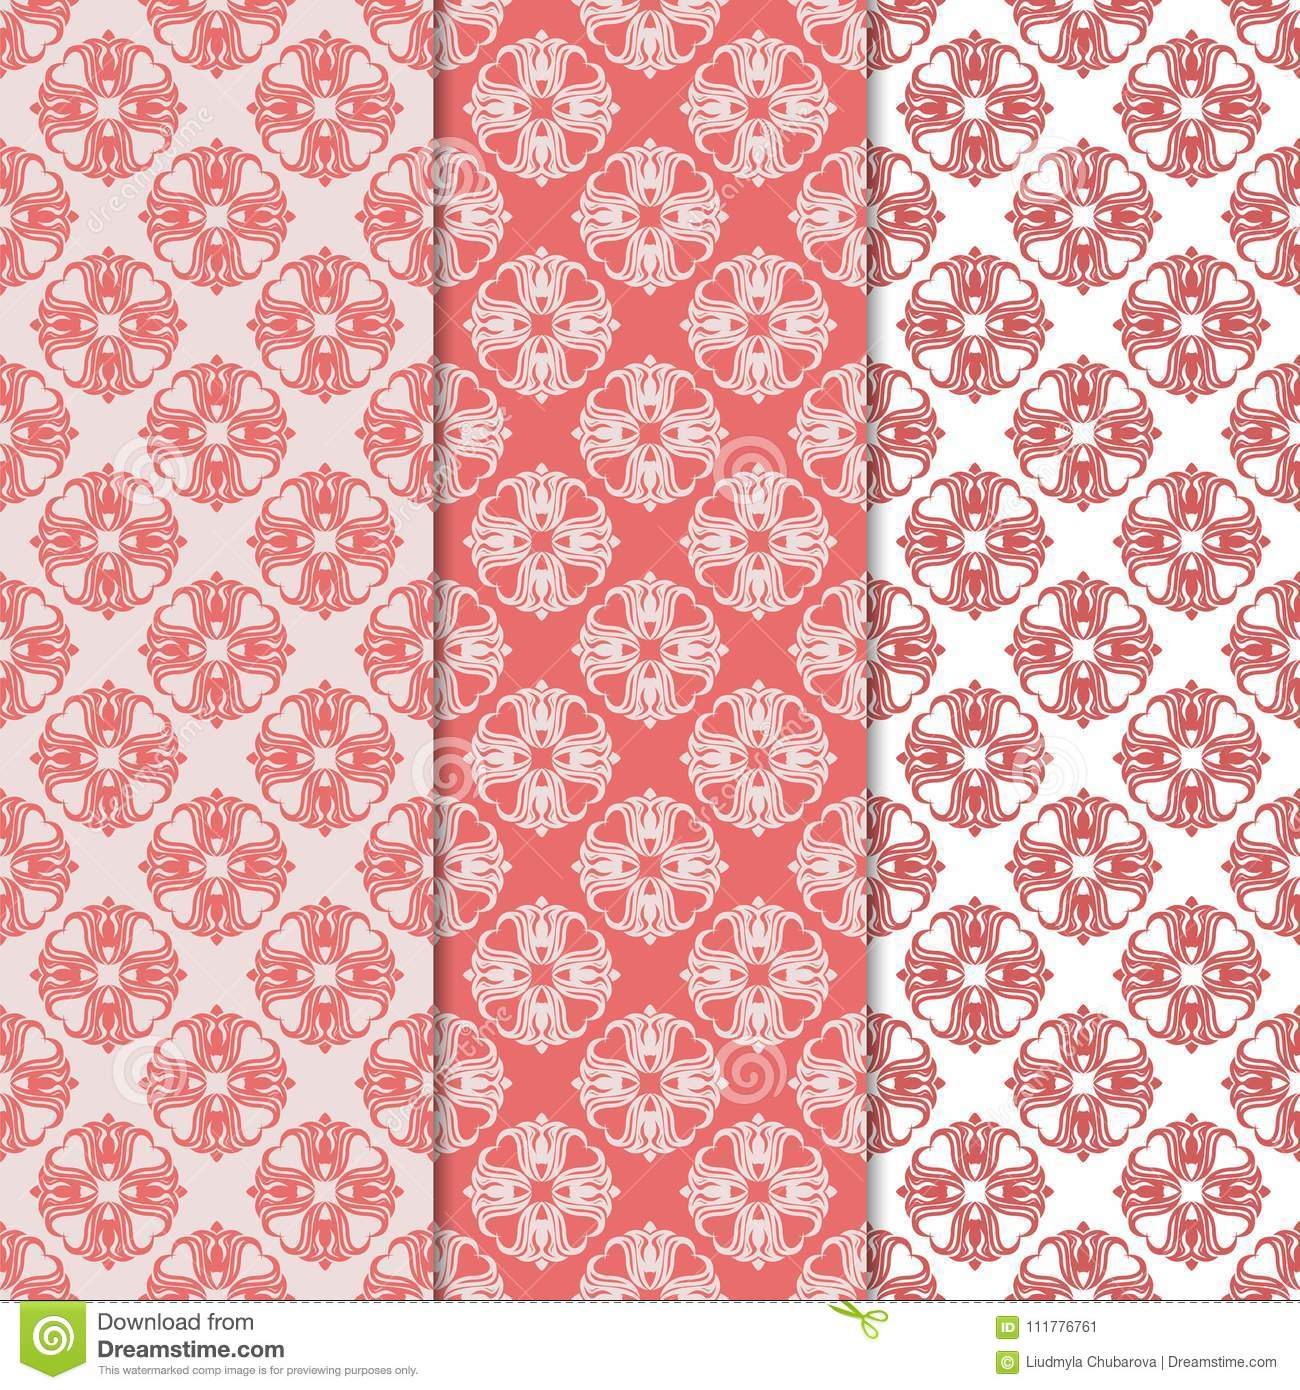 Floral backgrounds with colored seamless pattern